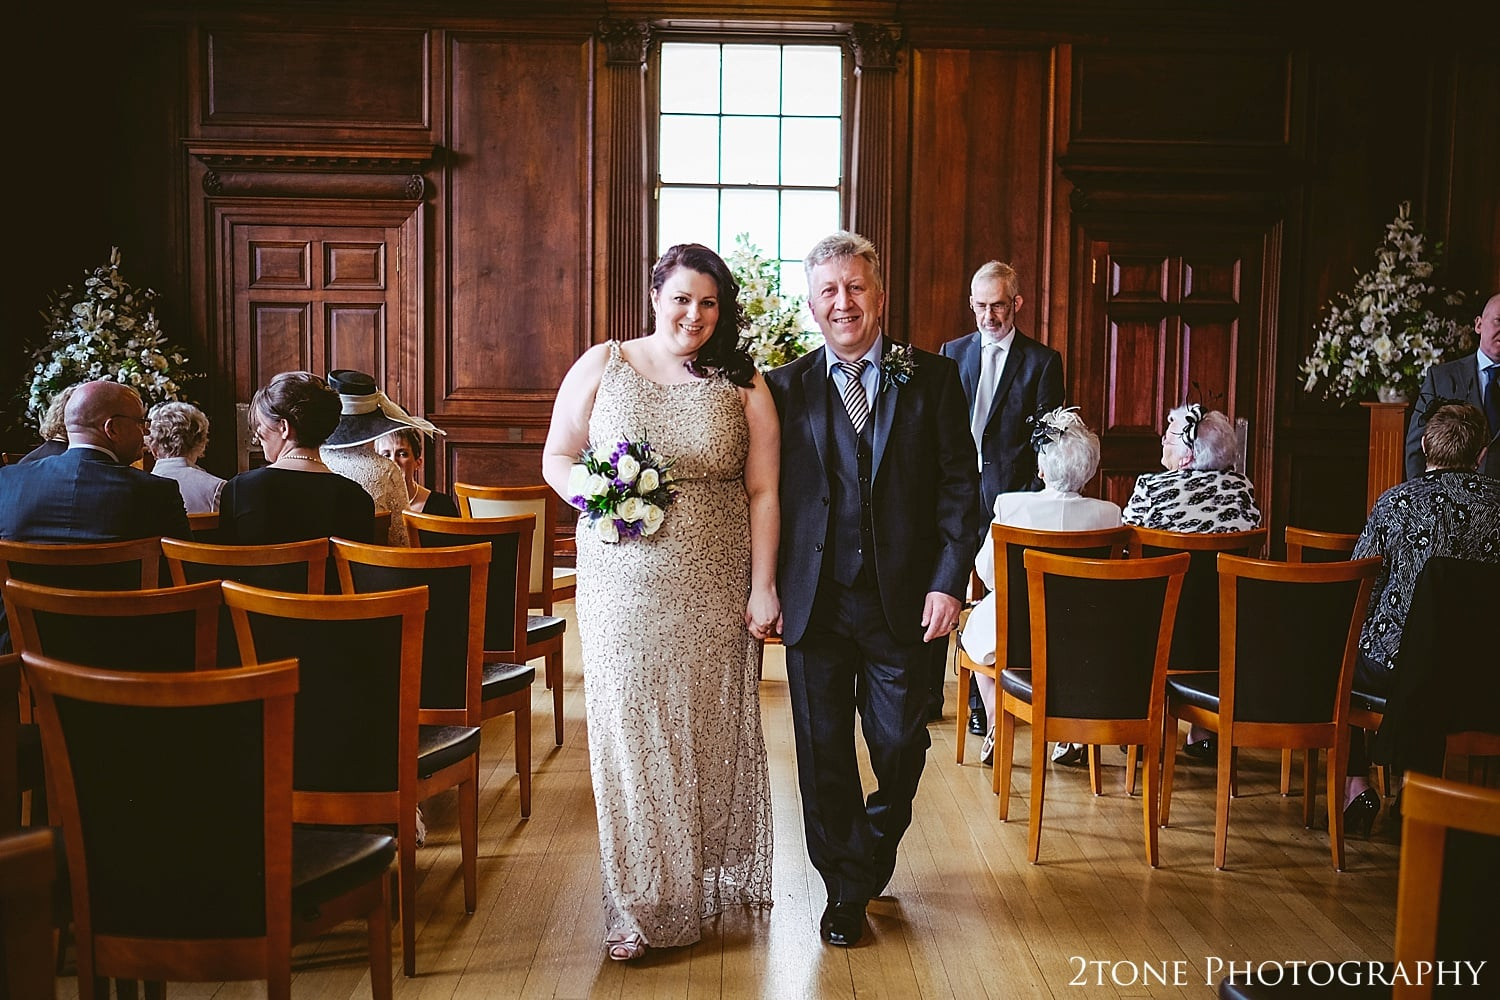 Wedding Ceremony.  Wedding Photography at the Lothian Chambers in Edinburgh by 2tone Photography